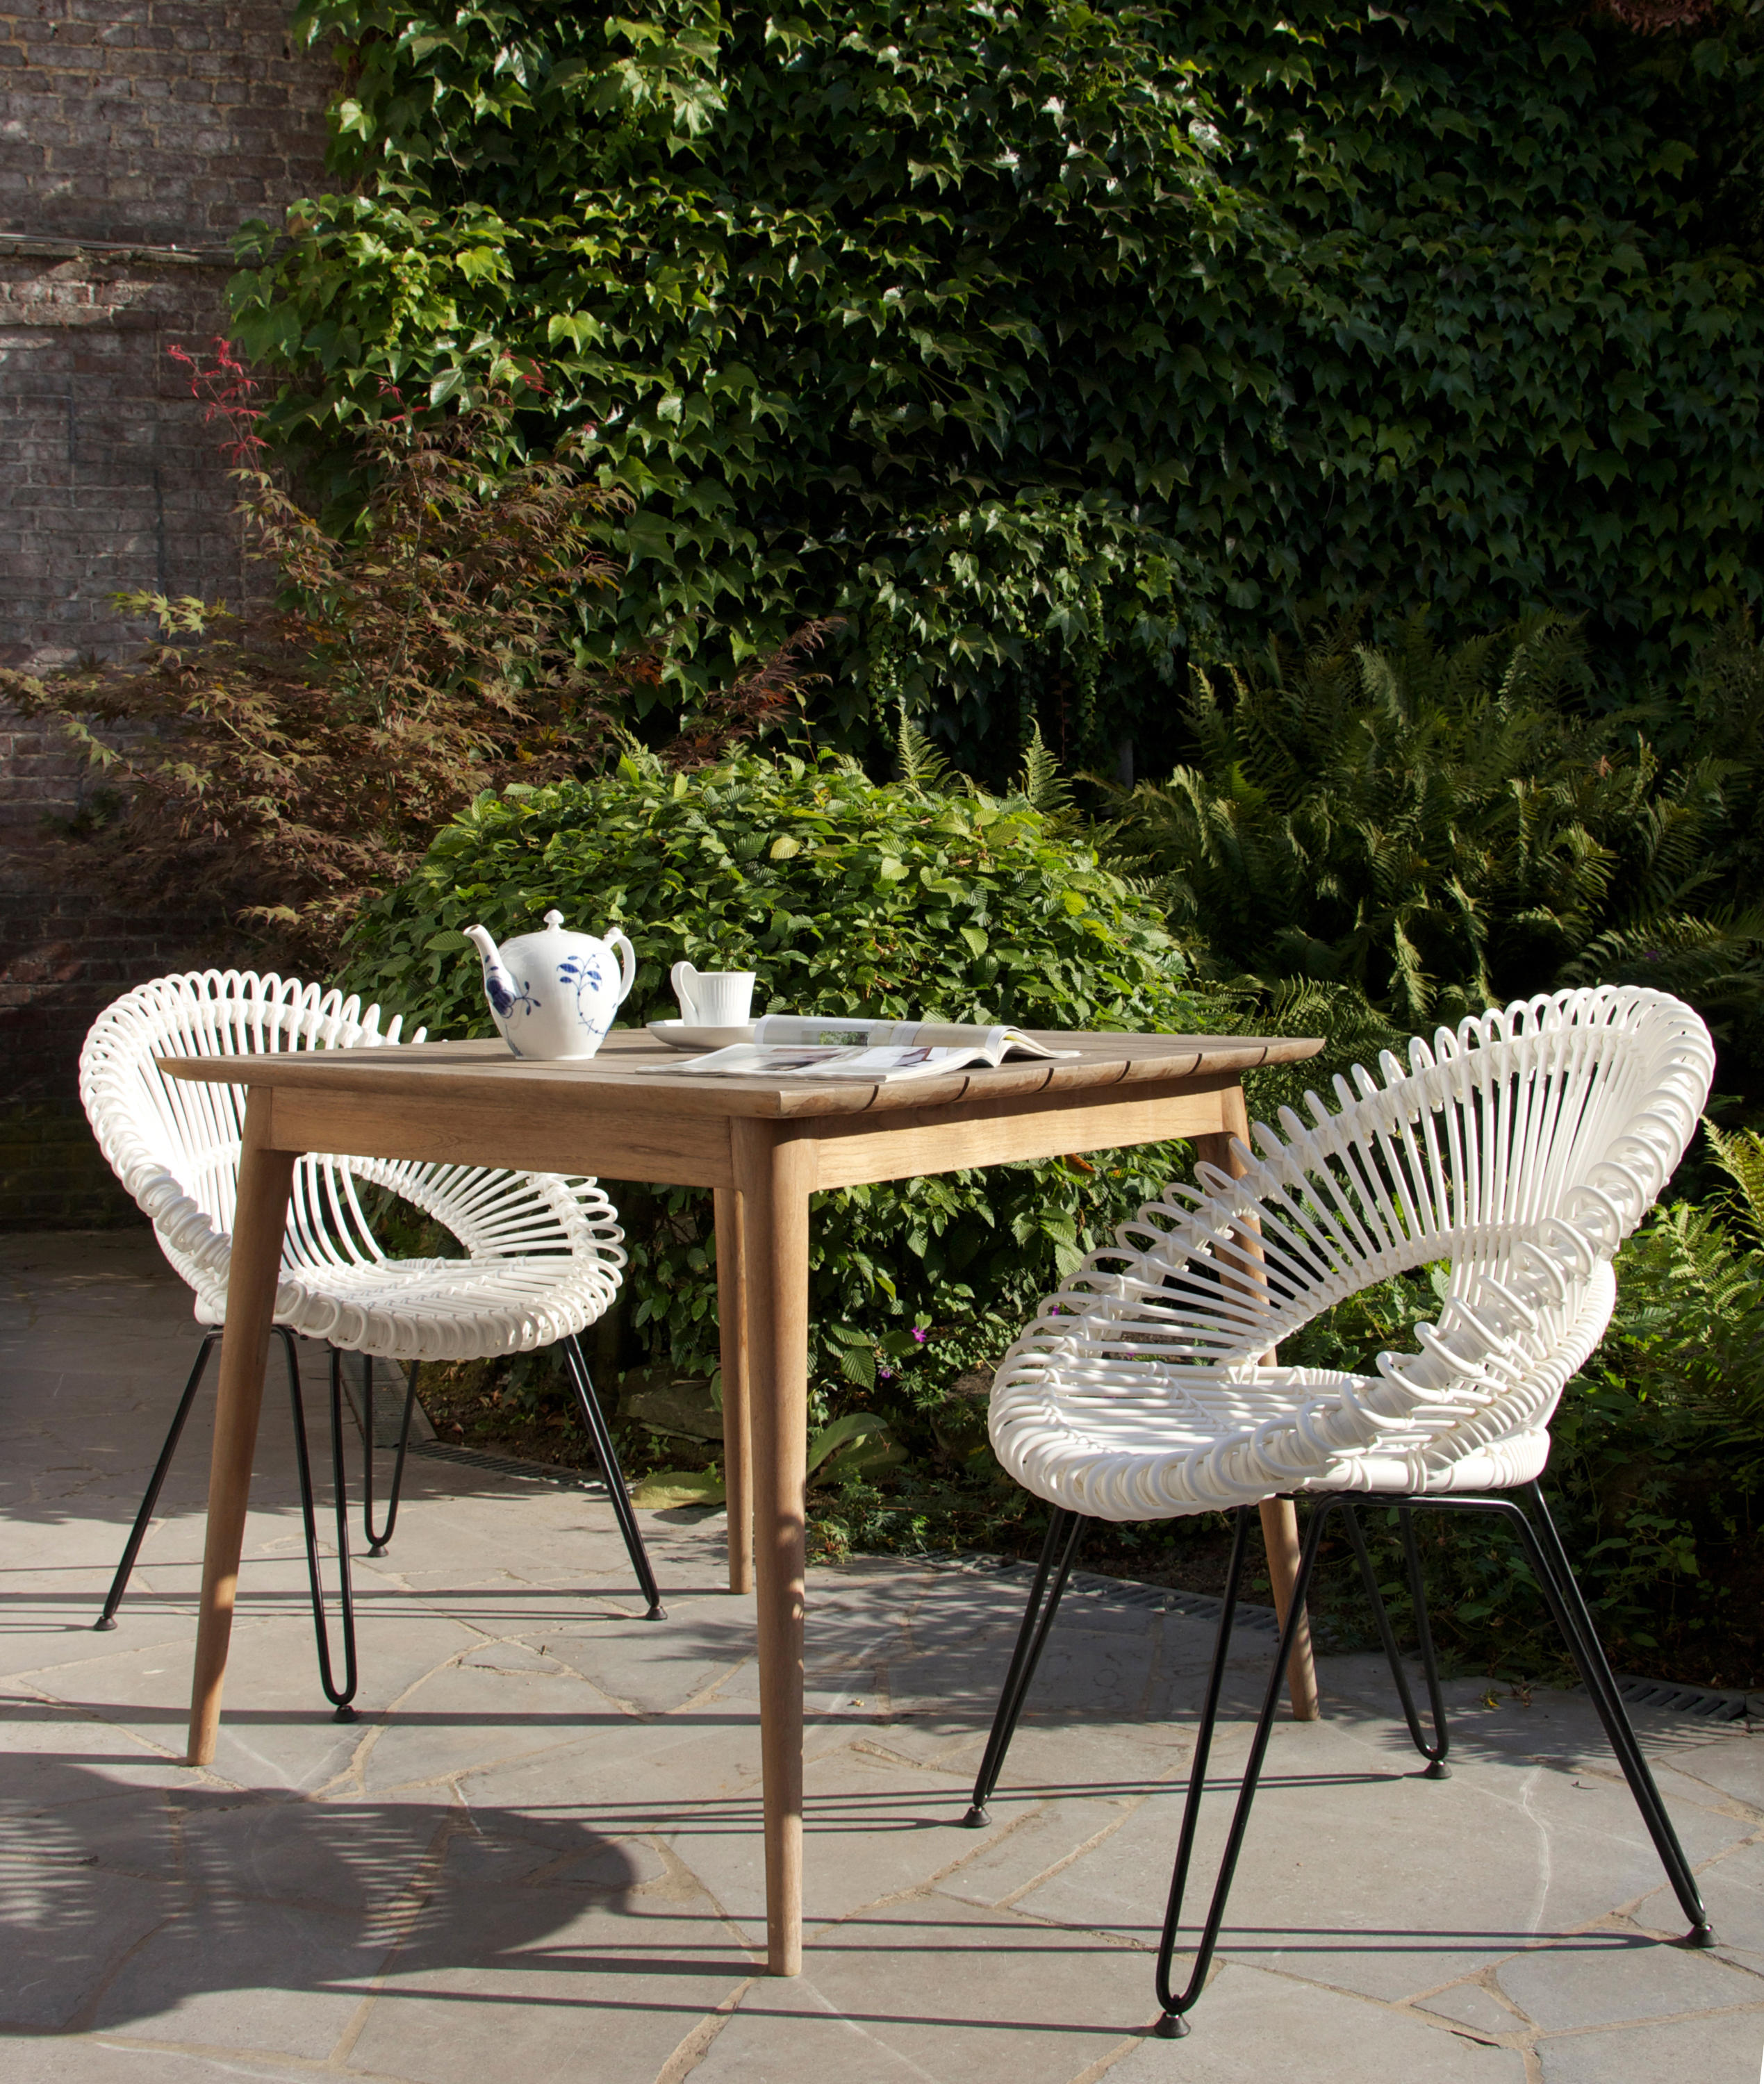 roxy dining chair garden chairs from vincent sheppard. Black Bedroom Furniture Sets. Home Design Ideas